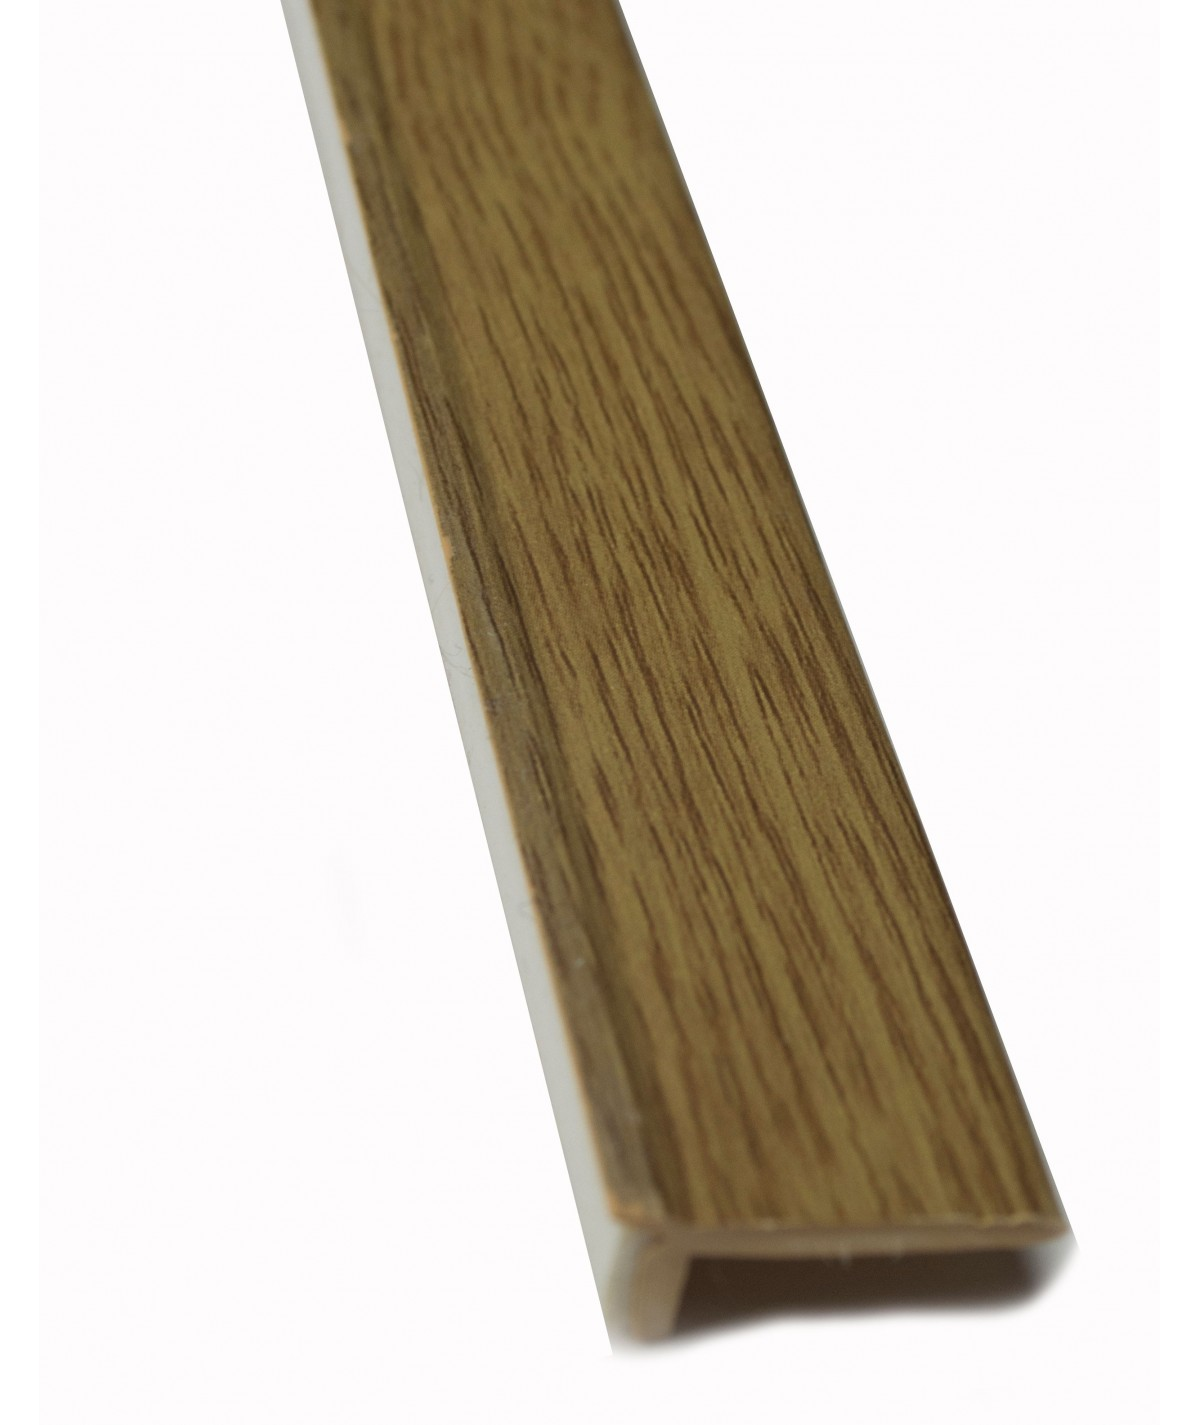 Medium Oak (B) Floor Edge Adhesive Trim 5 x 2Mtr Lengths Bridge Gap Between Floor and Skirting 10mtrs